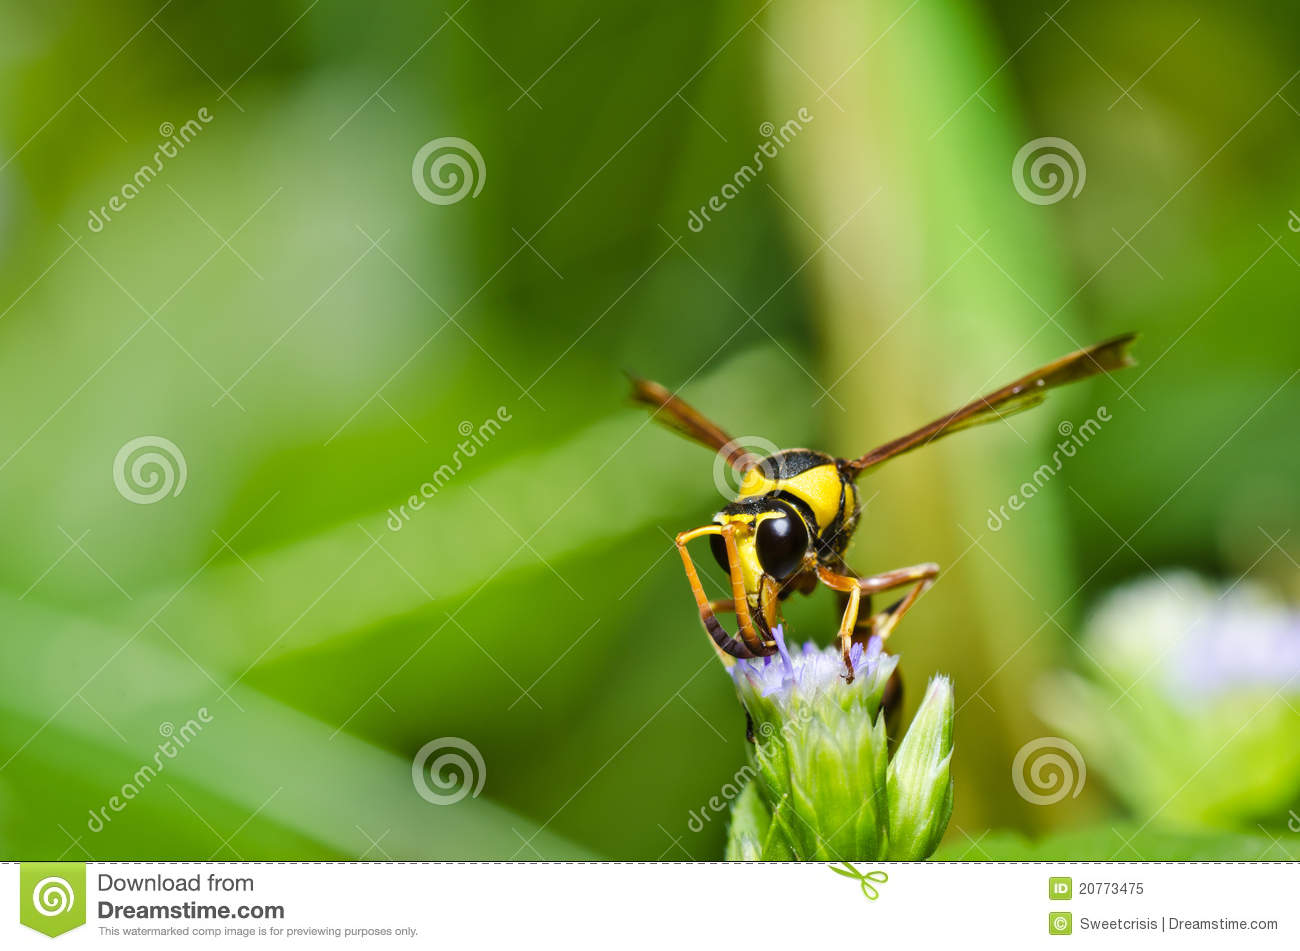 how to stop wasps in garden